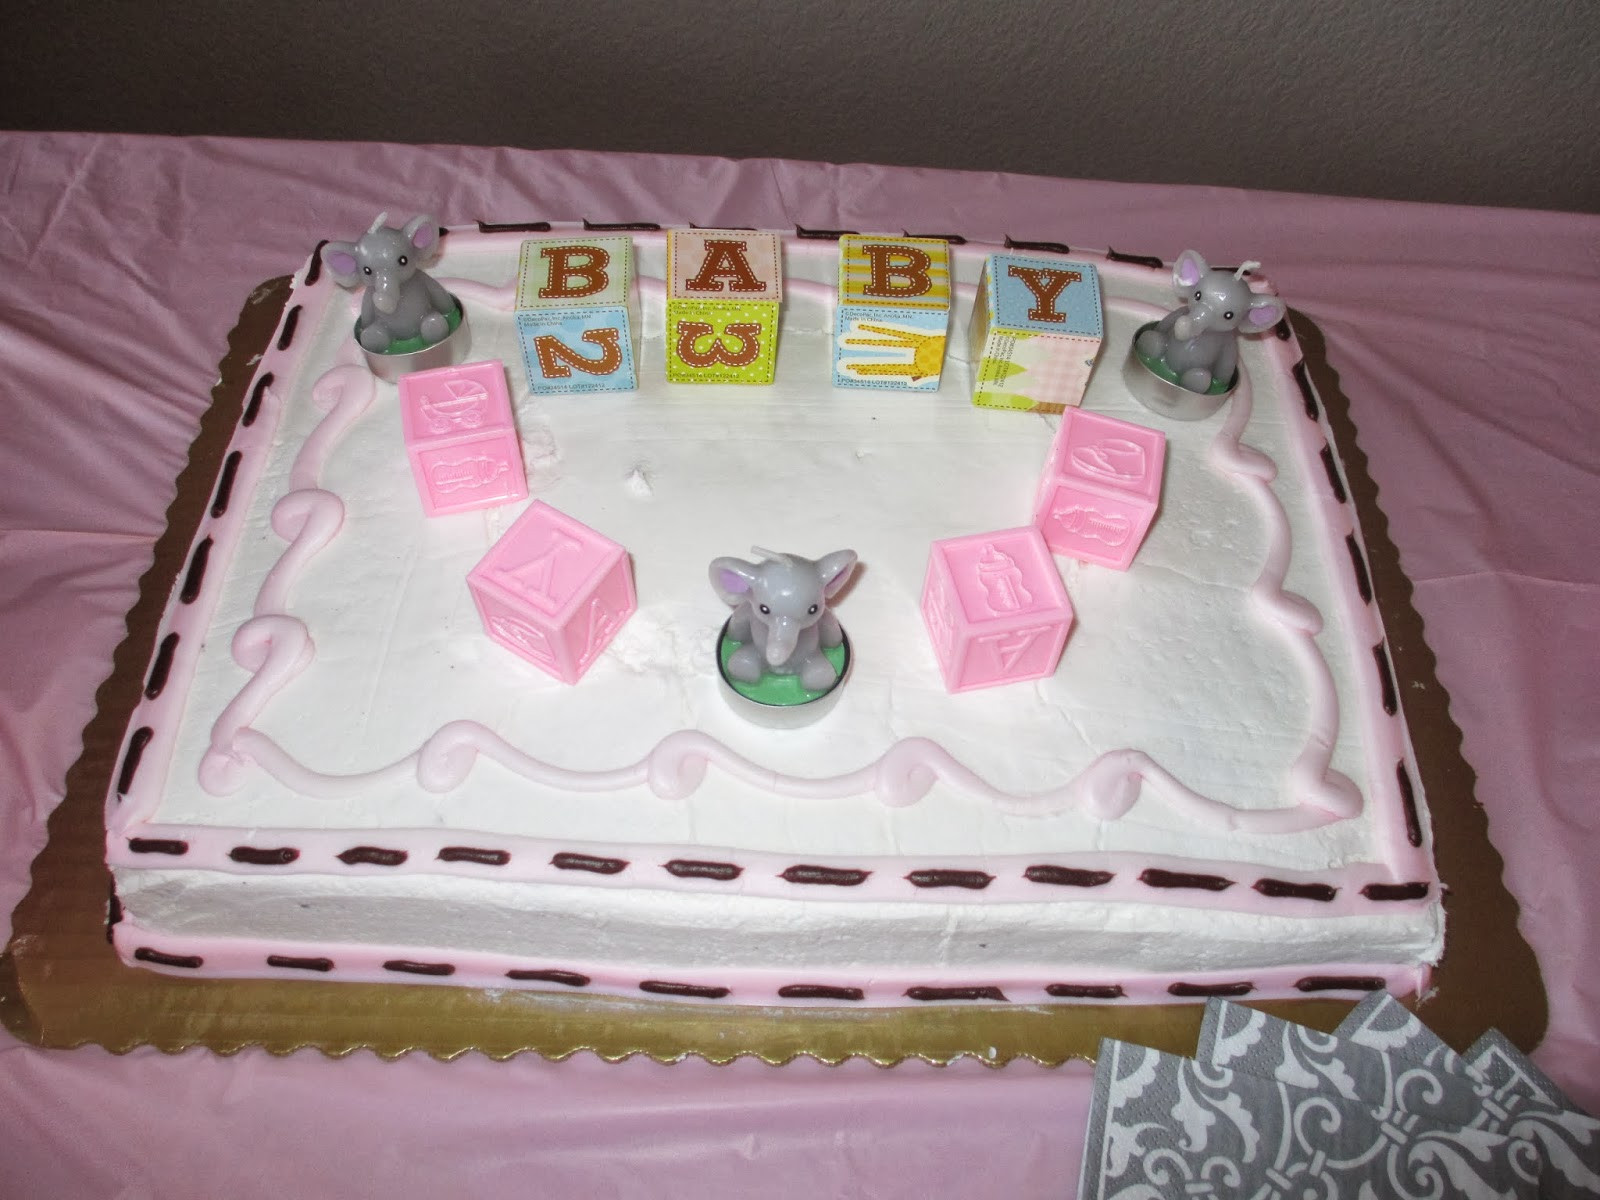 King Soopers Wedding Cakes  Baby Shower Cakes Baby Shower Cakes King Soopers